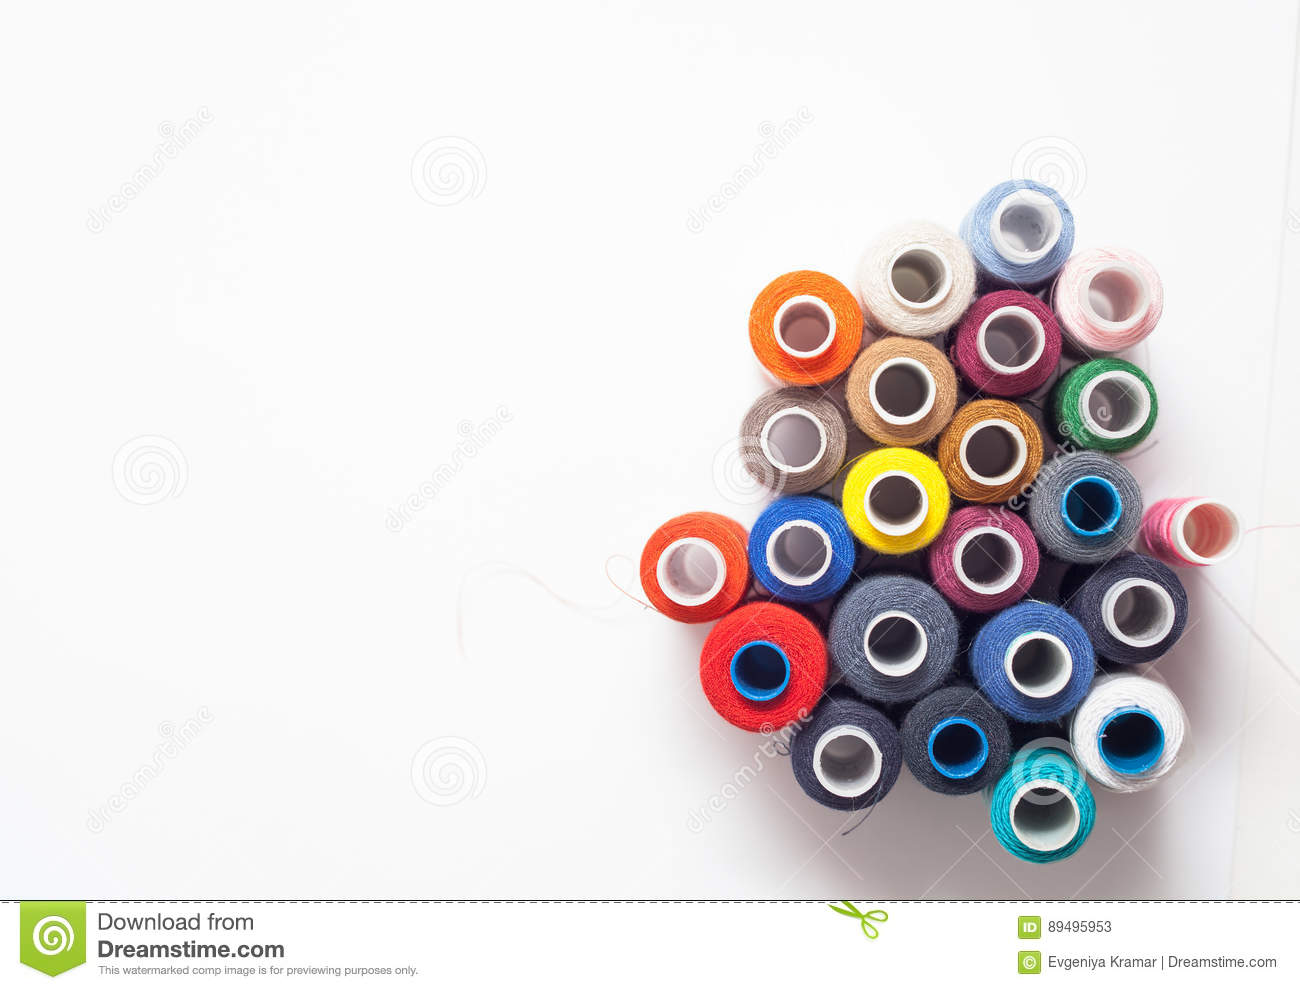 Colored thread coils on white background, sewing tools